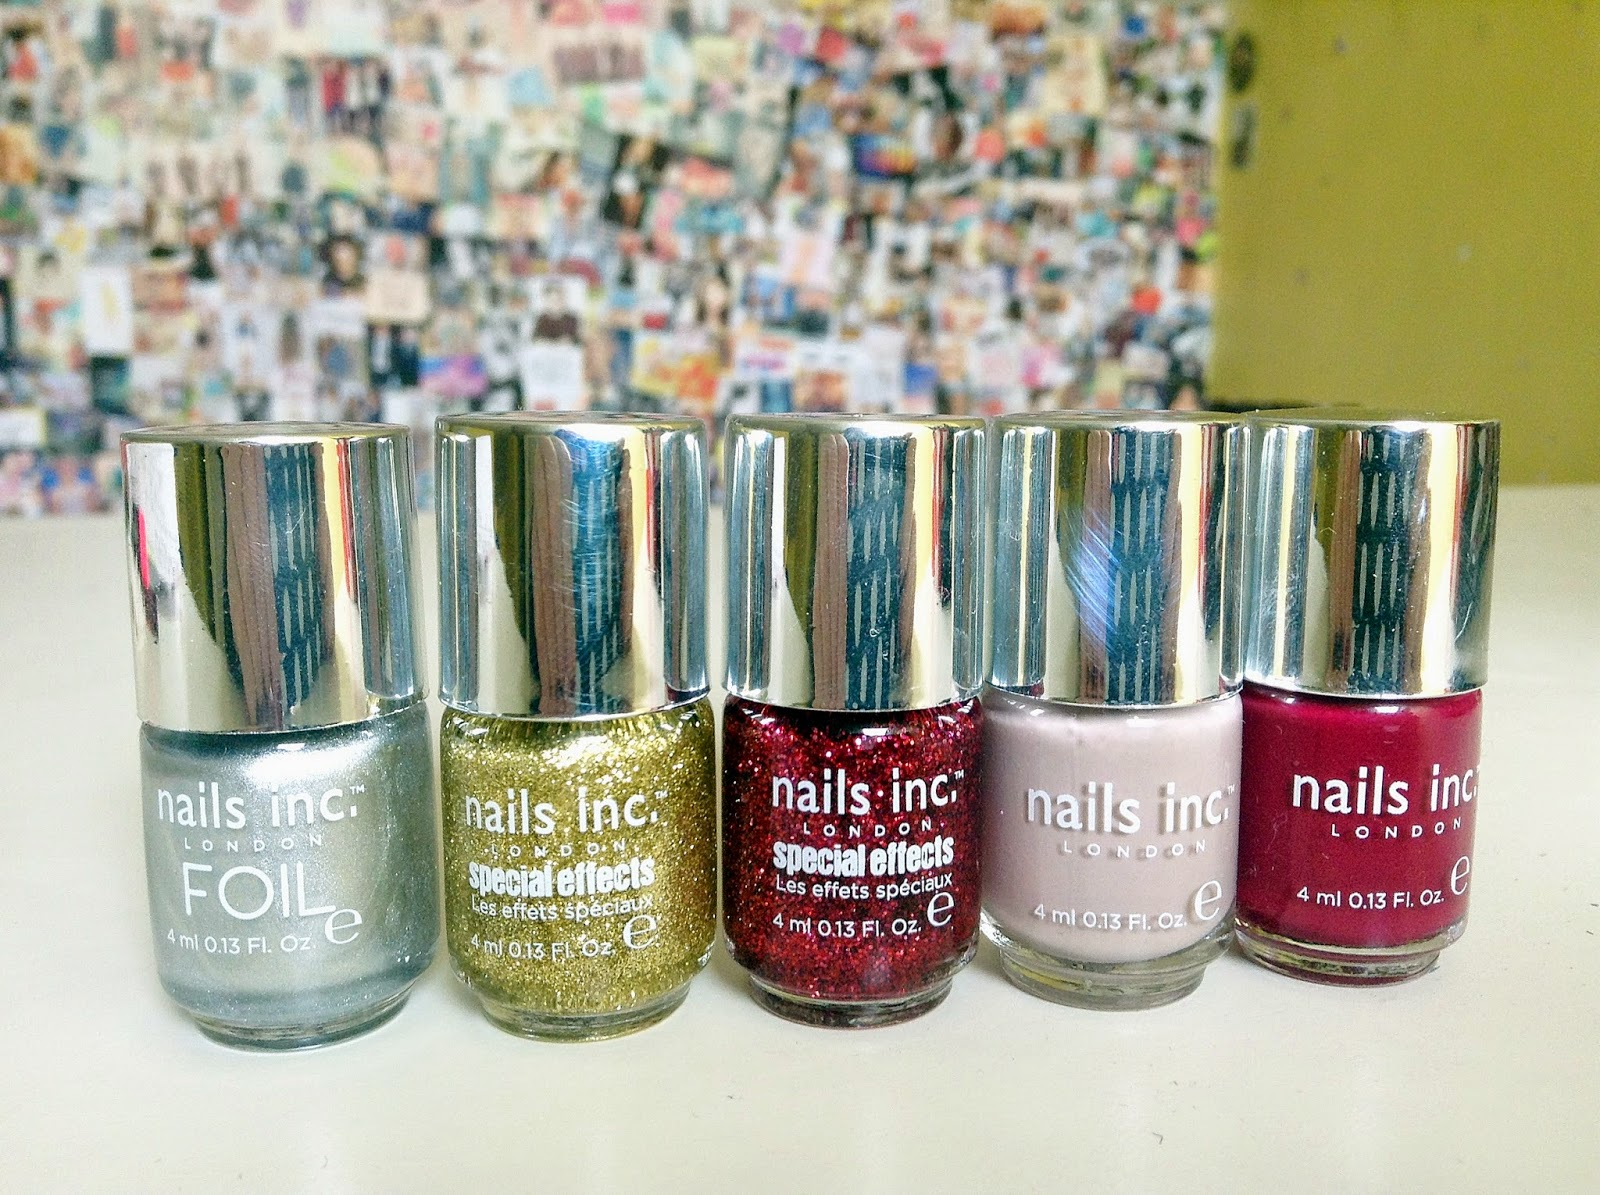 nails inc editors collection